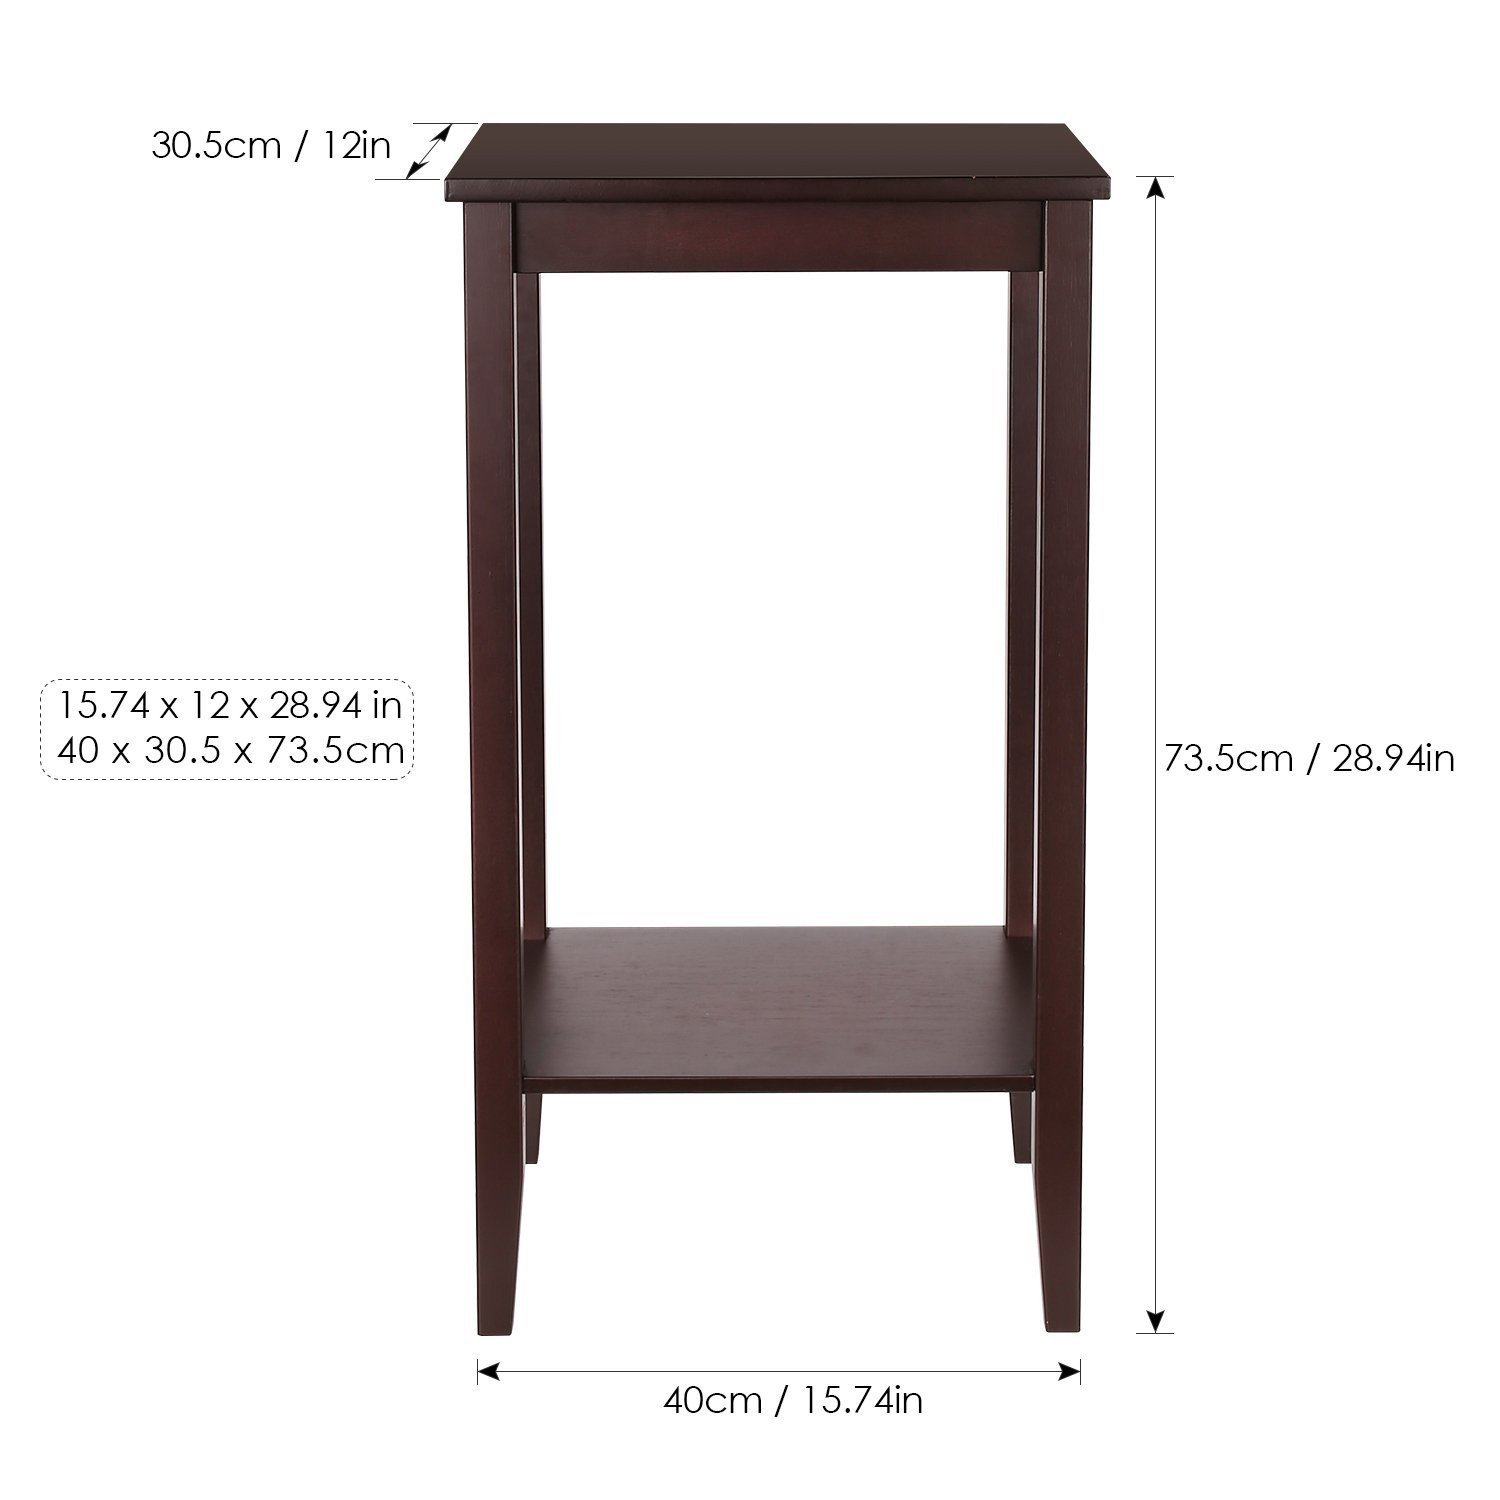 Indoor Multi-function Accent table Study Computer Desk Bedroom Living Room Modern Style End Table Sofa Side Table Coffee Table Modern Coffee Table by DASII (Image #2)